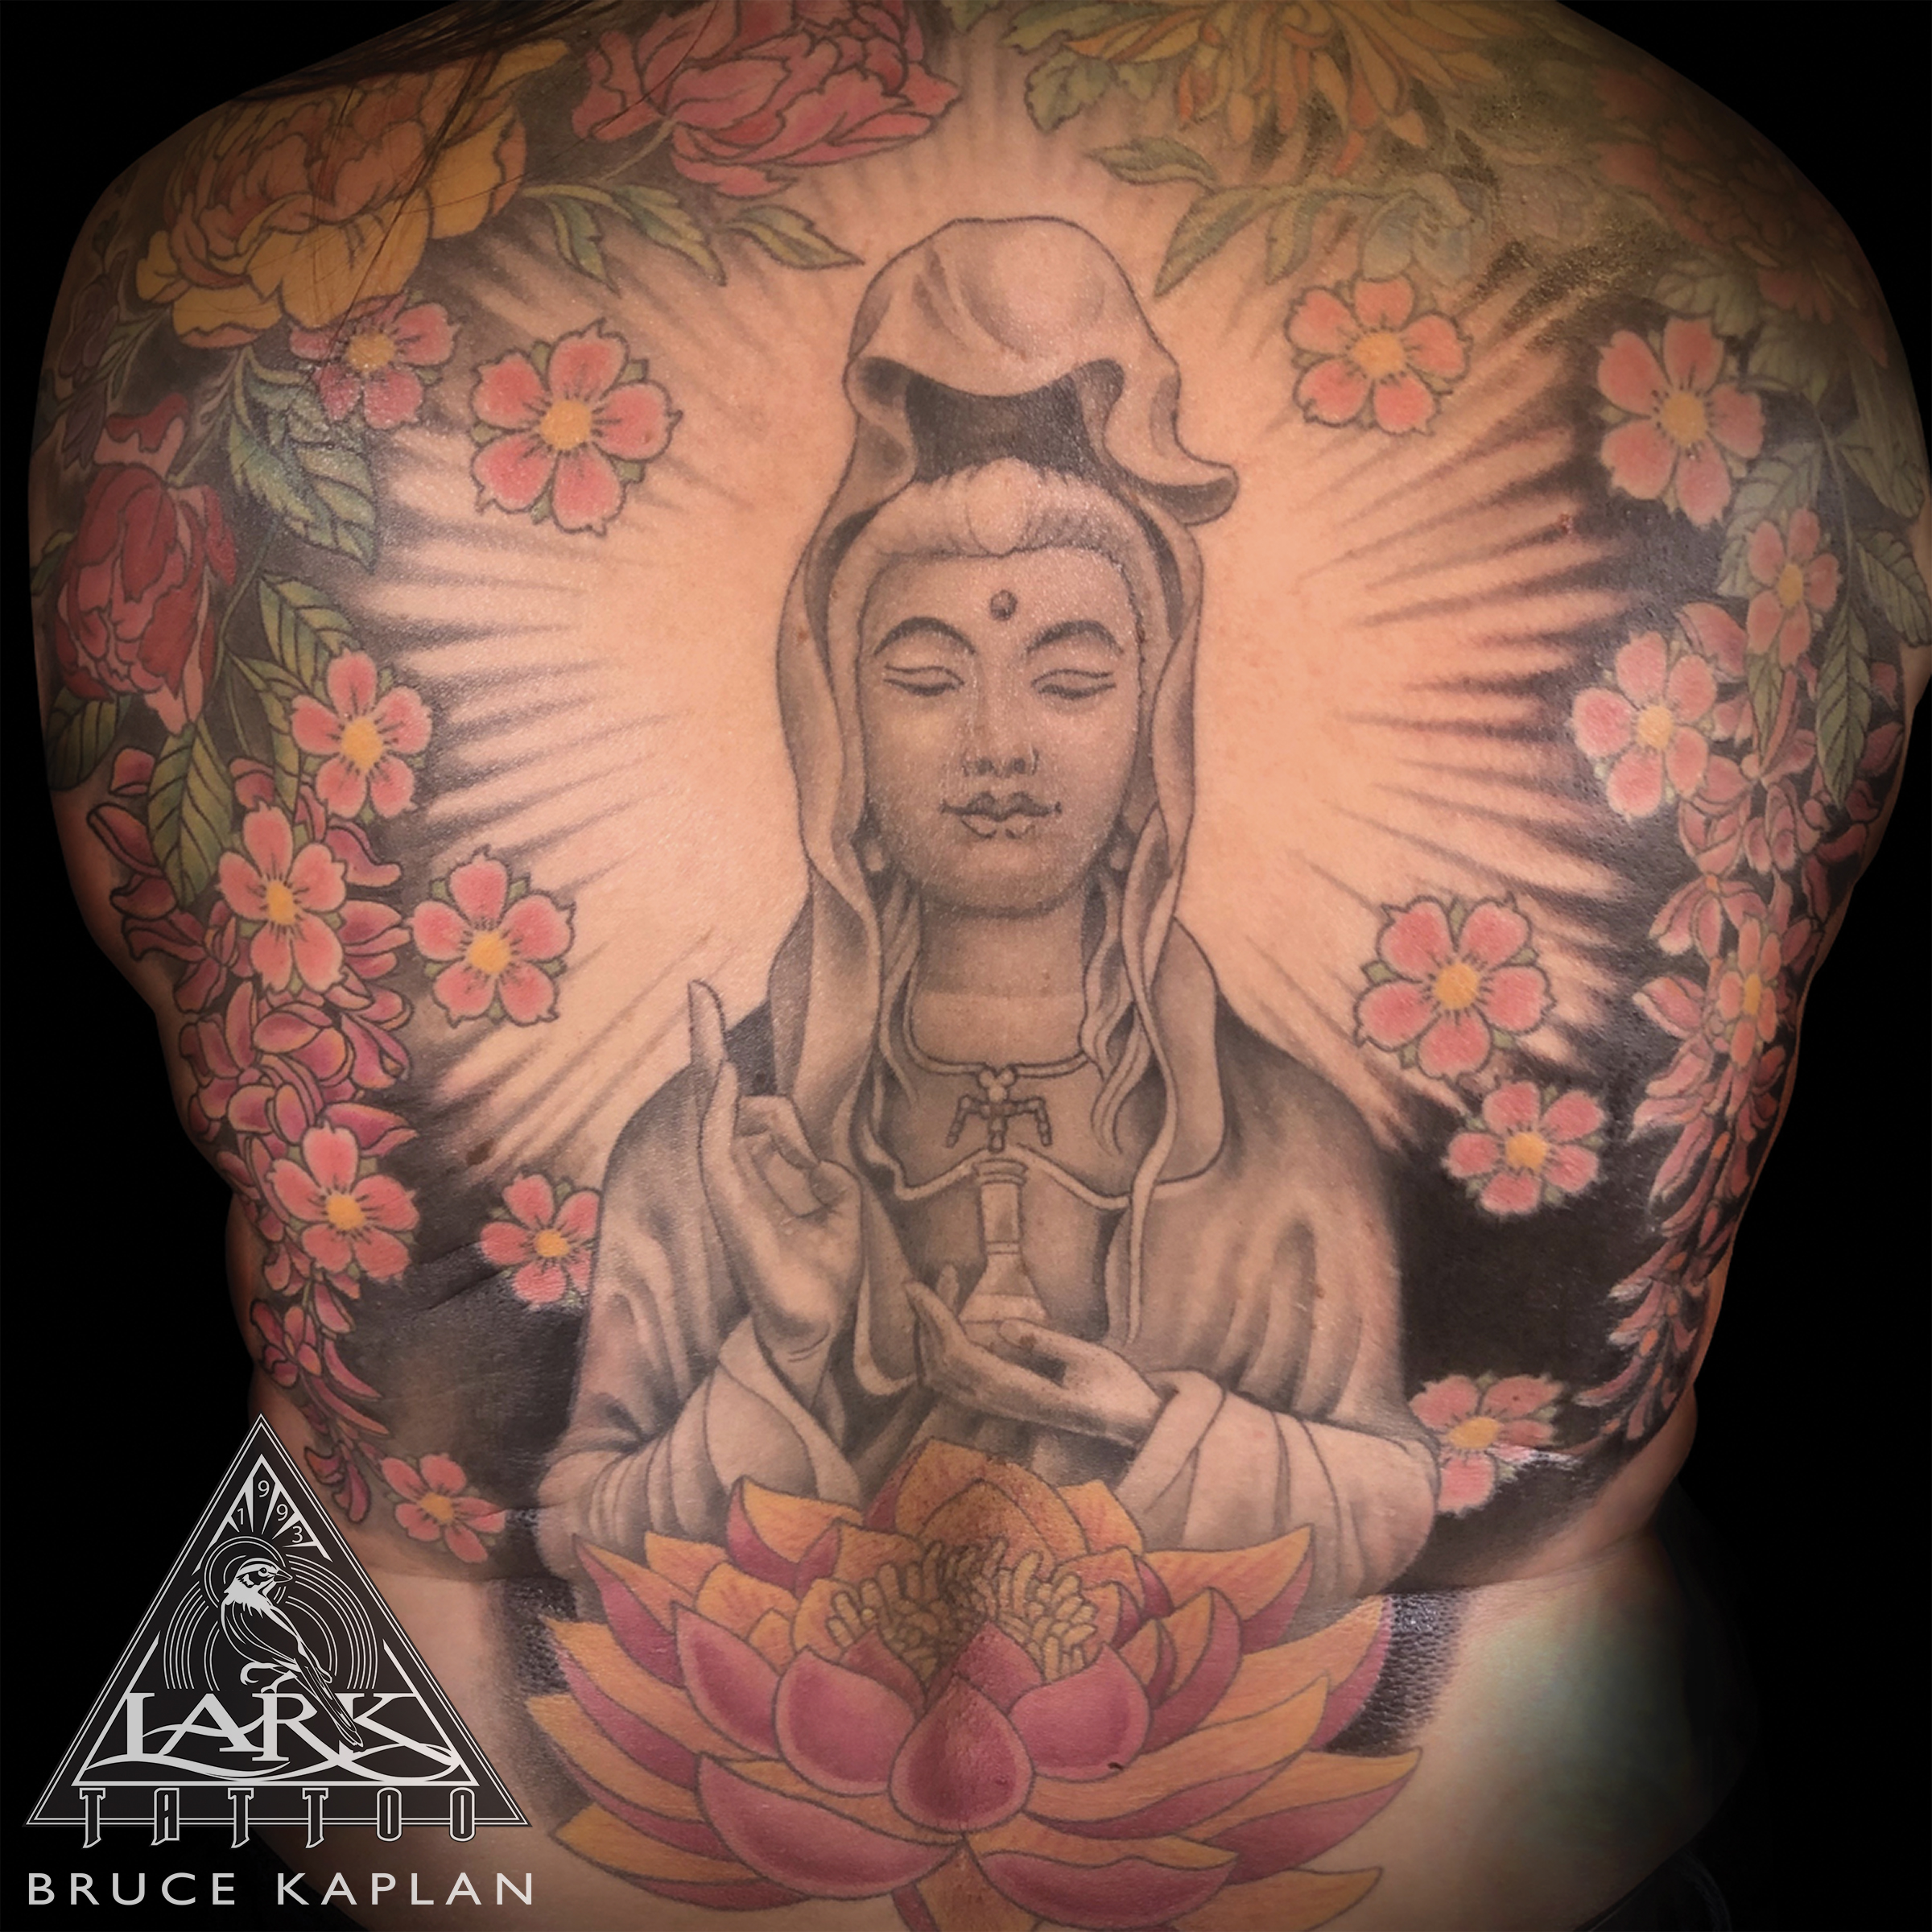 LarkTattoo, Tattoo, Tattoos , TattooArtist, Tattoist, Tattooer, LongIslandTattooArtist, LongIslandTattooer, KwanYin, KwanYinTattoo, Buddha, BuddhaTattoo, FemaleBuddha, FemaleBuddhaTattoo, ColorTattoo, BackTattoo, FullBackTattoo, LargeTattoo, LargeScaleTattoo, CherryBlossom , CherryBlossomTattoo, Lotus, LotusTattoo, Peony, PeonyTattoo, Chrysanthemum, ChrysanthemumTattoo, FlowerTattoo, LongIslandTattoo, TattooOfTheDay, Tat, Tats, Tatts, Tatted, Inked, Ink, TattooInk, AmazingInk, AmazingTattoo, BodyArt, LarkTattooWestbury, Westbury, LongIsland, NY, NewYork, USA, Art, Tattedup, InkedUp, LarkTattoos